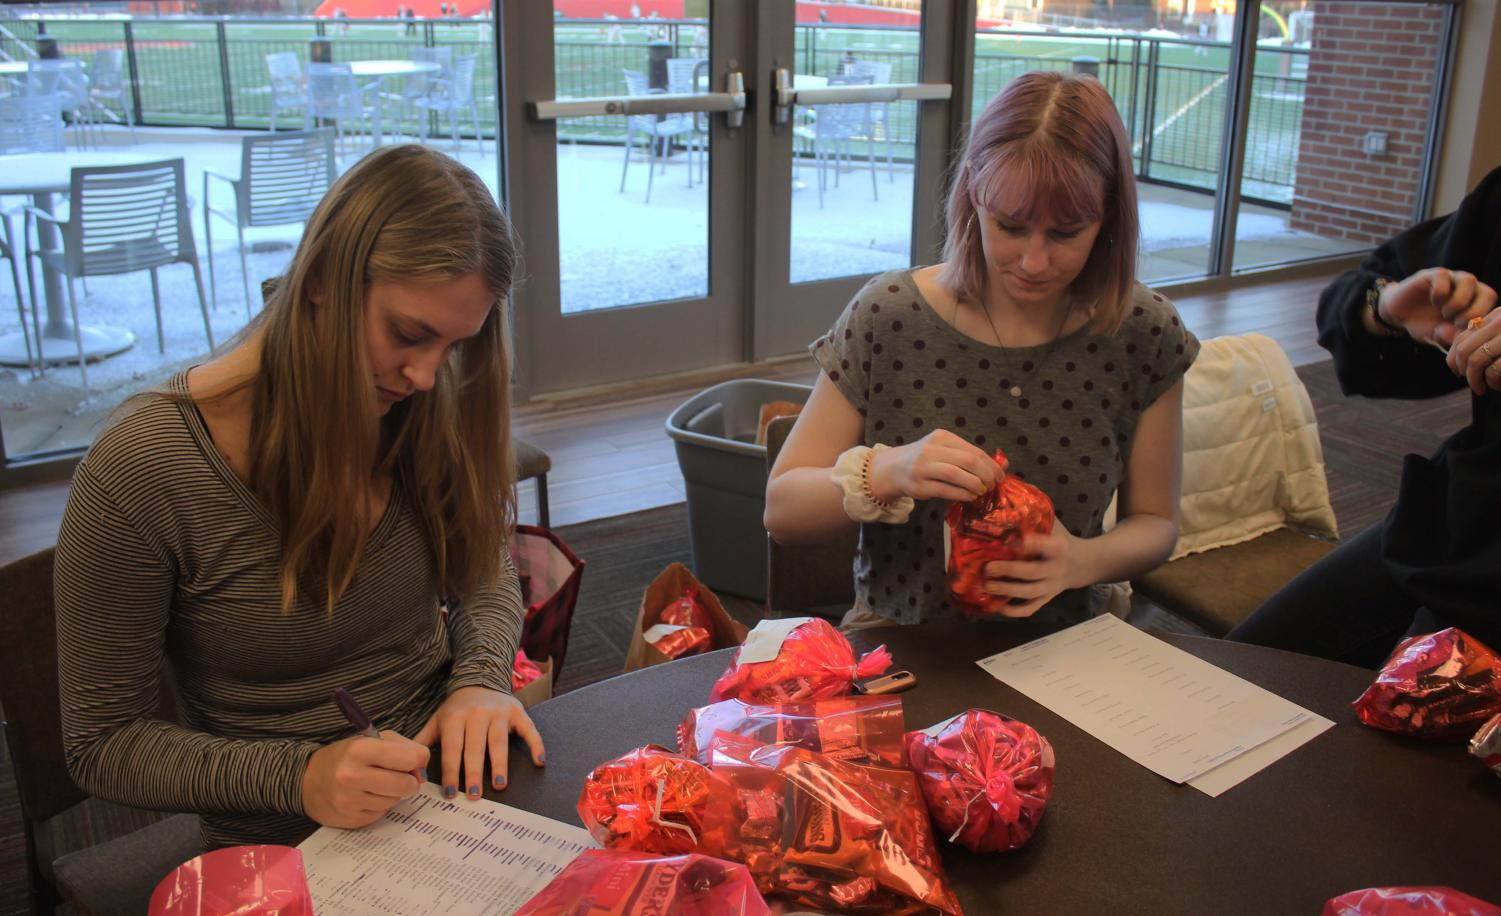 The Oberlin women's volleyball team held a fundraiser Thursday, making individualized $25 candy bags for Valentine's Day and allowing Oberlin students to surprise their loved ones with a hand-delivered holiday treat. The idea was inspired by the Oberlin women's softball team, which has been making and delivering Halloween gift bags as a fundraiser for the past three years. The volleyball team's gift bag featured an assortment of sweets, including Skittles and chocolate. Throughout the day, members of the team ran across campus, knocking on dorm room doors to bestow the Valentines on their excited recipients.